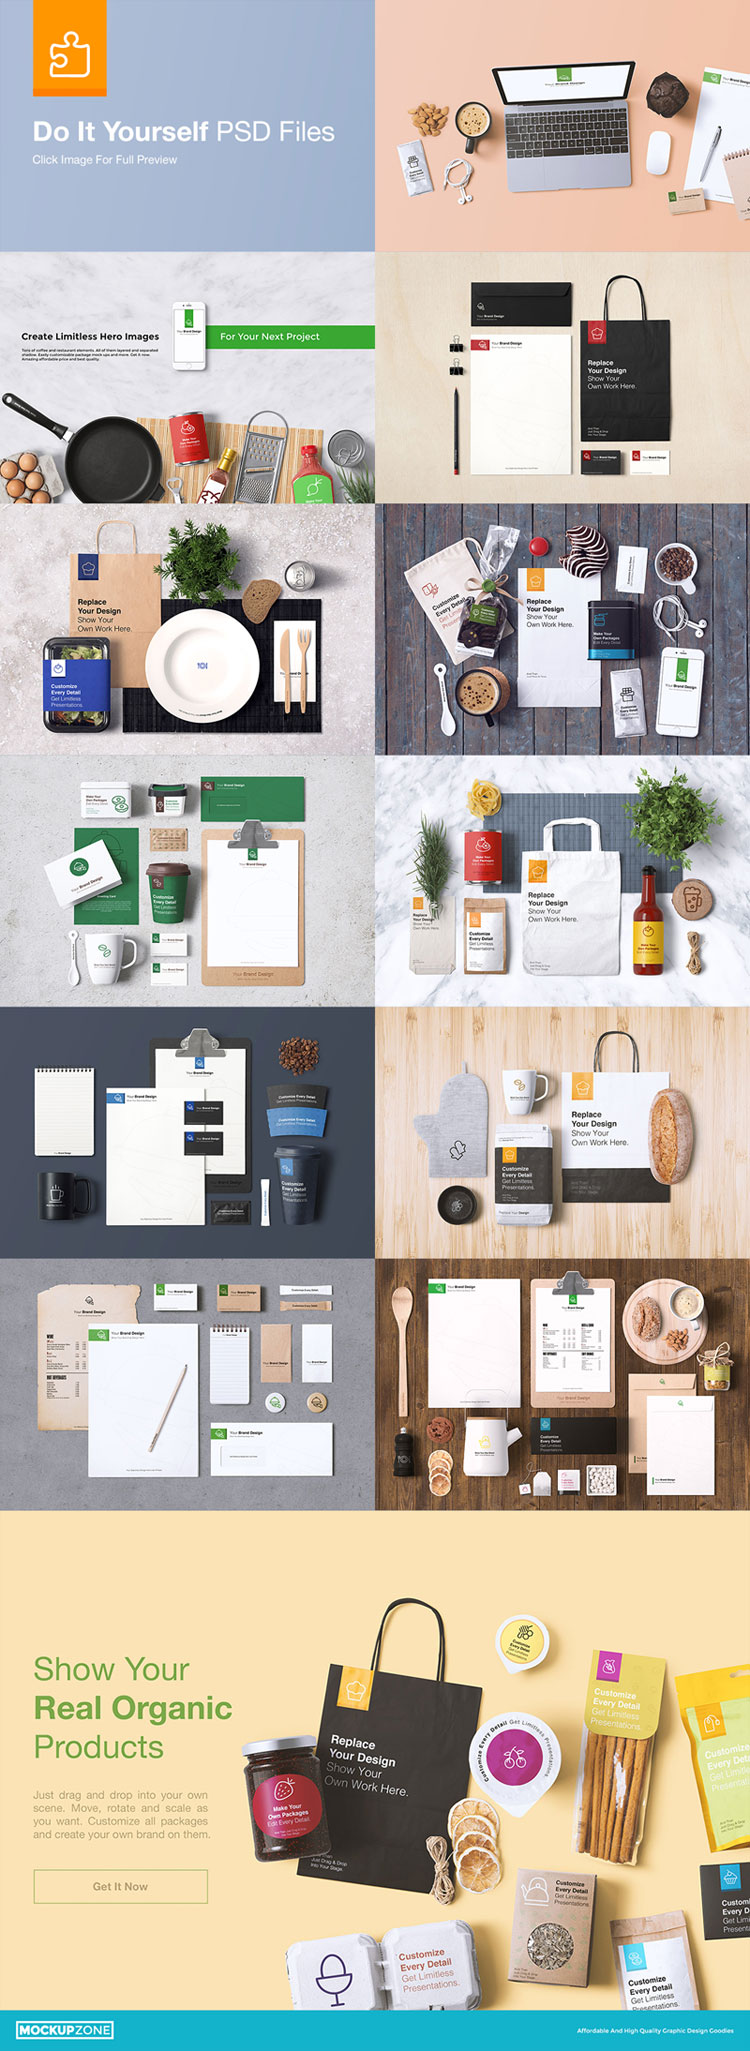 A comprehensive coffee branding and packages mock-up from Mockup Zone.